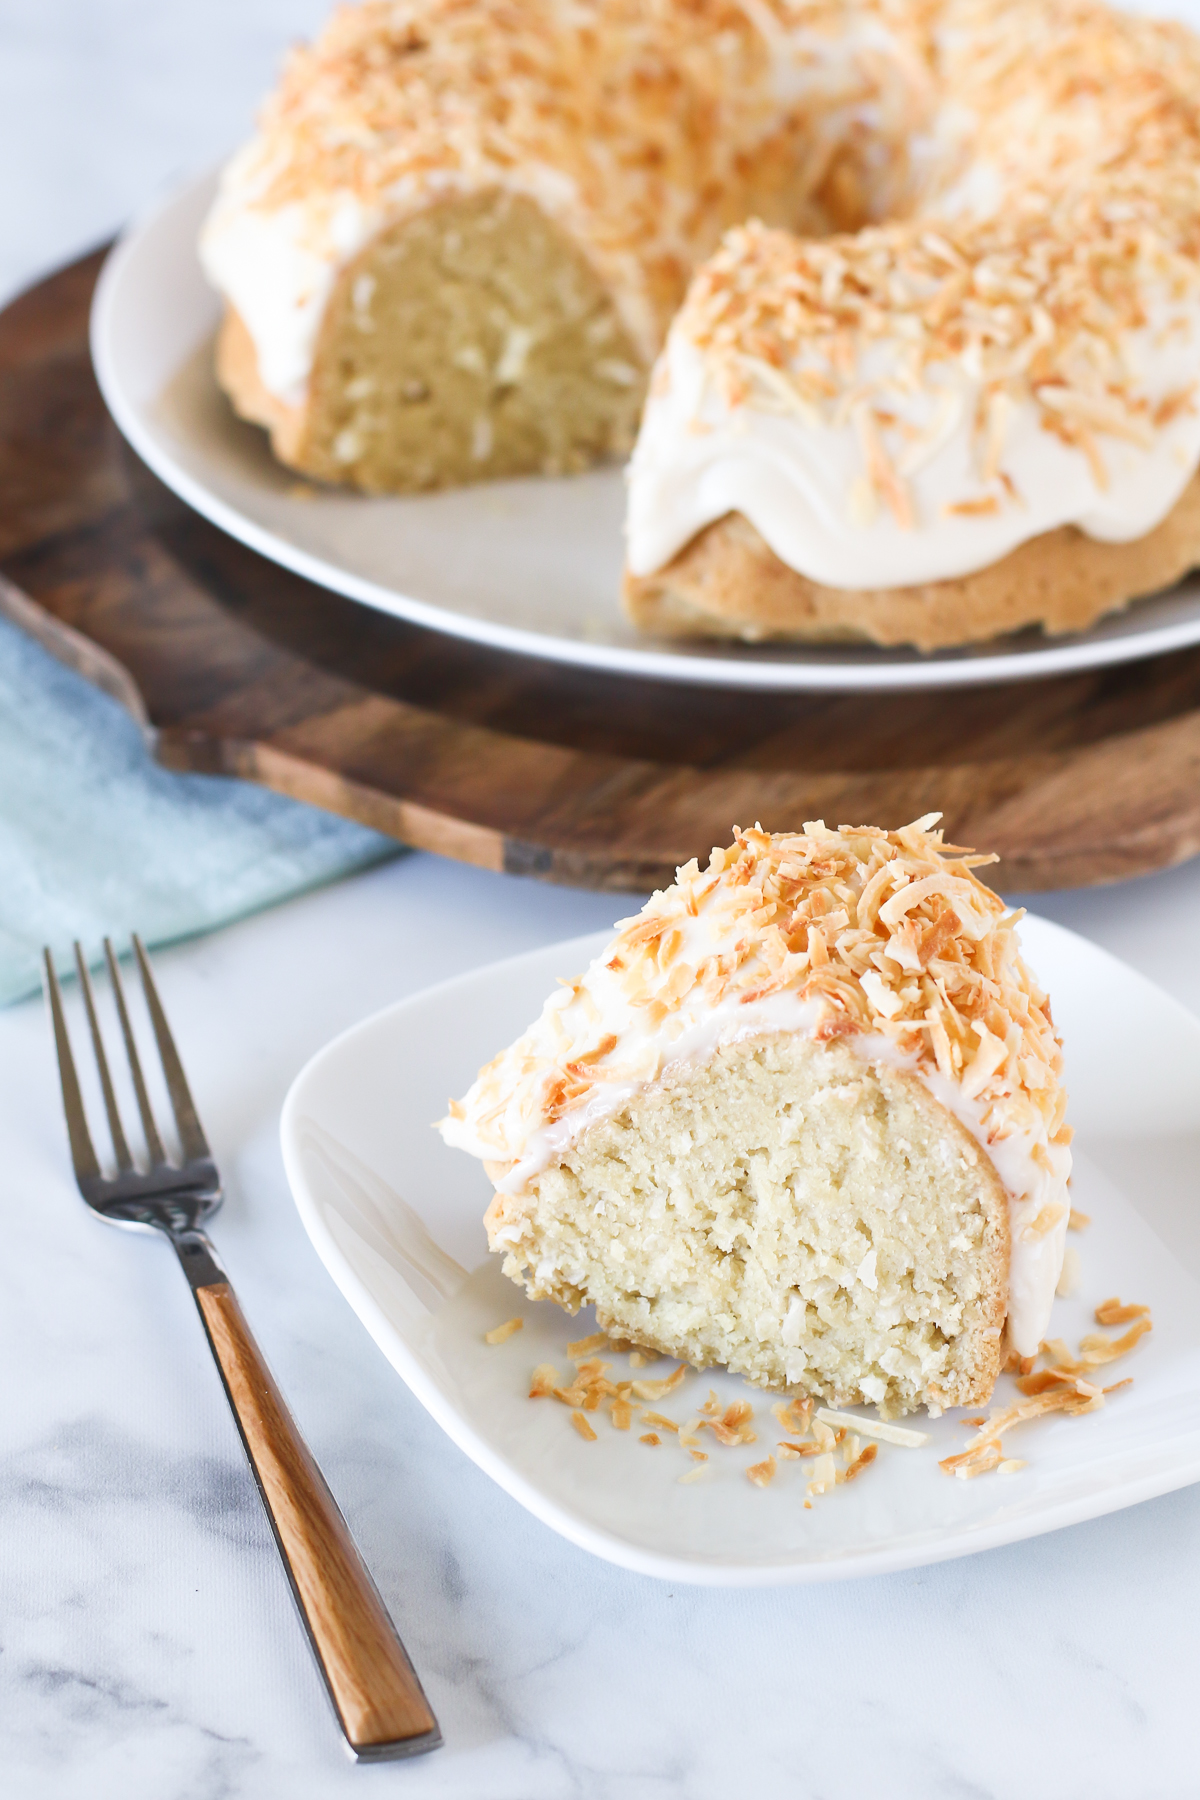 Gluten Free Vegan Coconut Bundt Cake. Give me all the coconut! Coconut cake with a simple frosting and covered in toasted coconut.